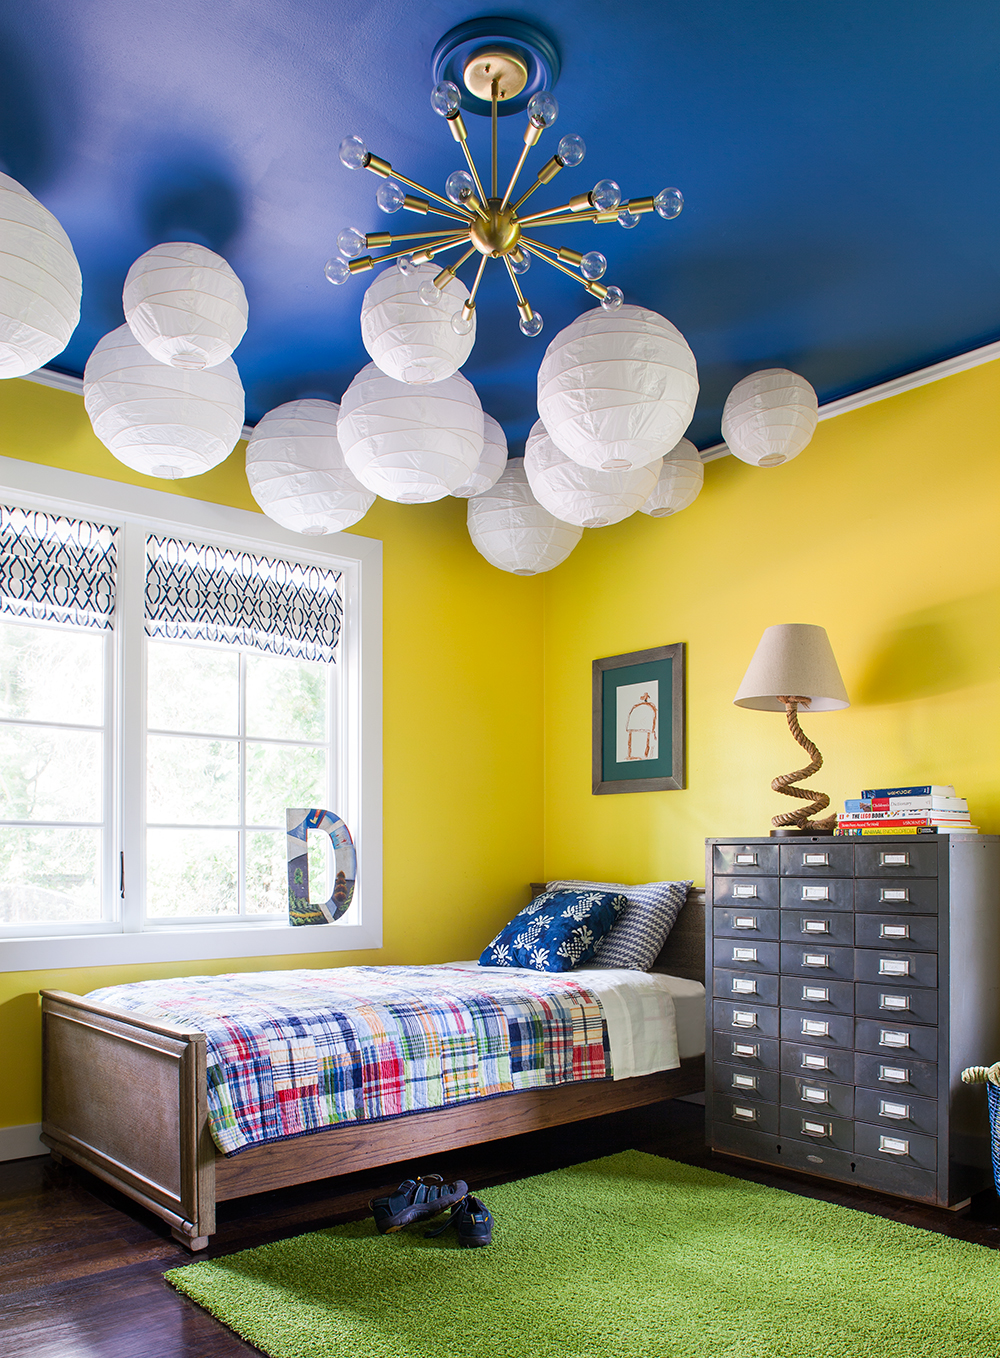 pasadena boy's bedroom | jeff herr photography